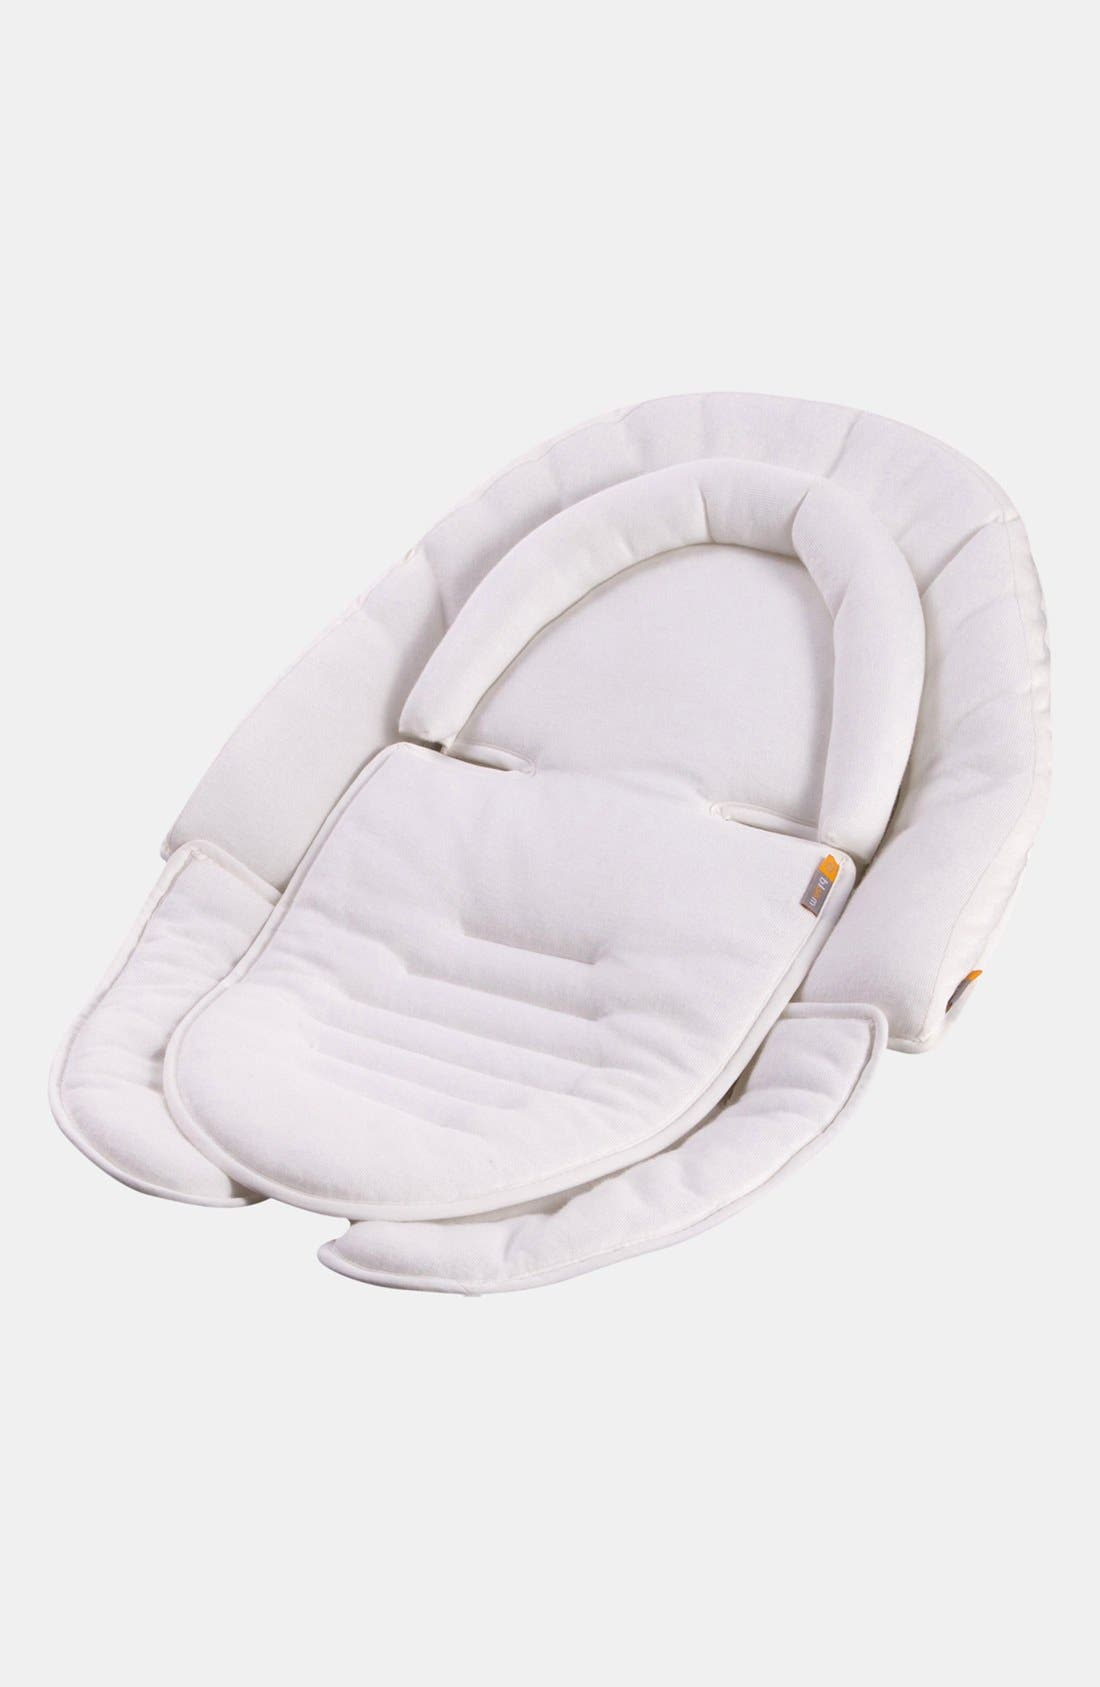 Universal Snug for Strollers, Car Seats & Highchairs,                             Main thumbnail 1, color,                             COCONUT WHITE